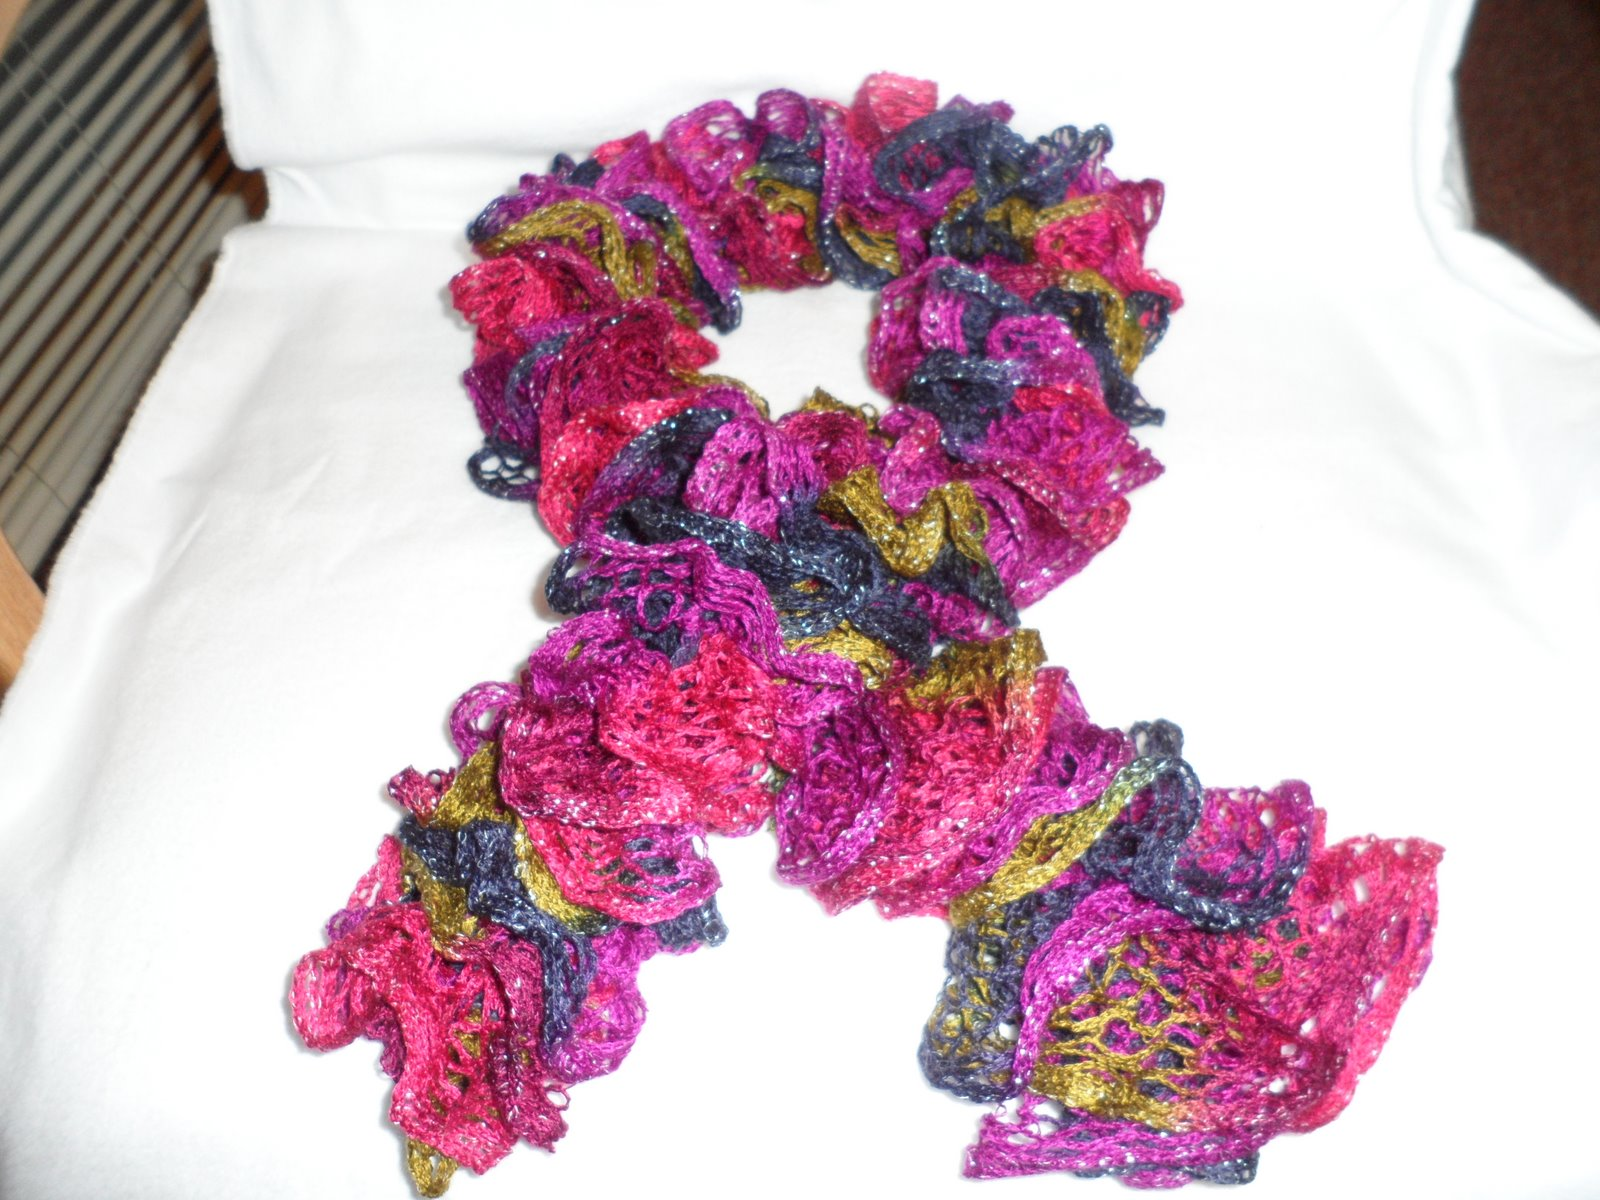 Free Ruffle Yarn Crochet Patterns : Easy Crochet Pattern: Ruffled Scarf